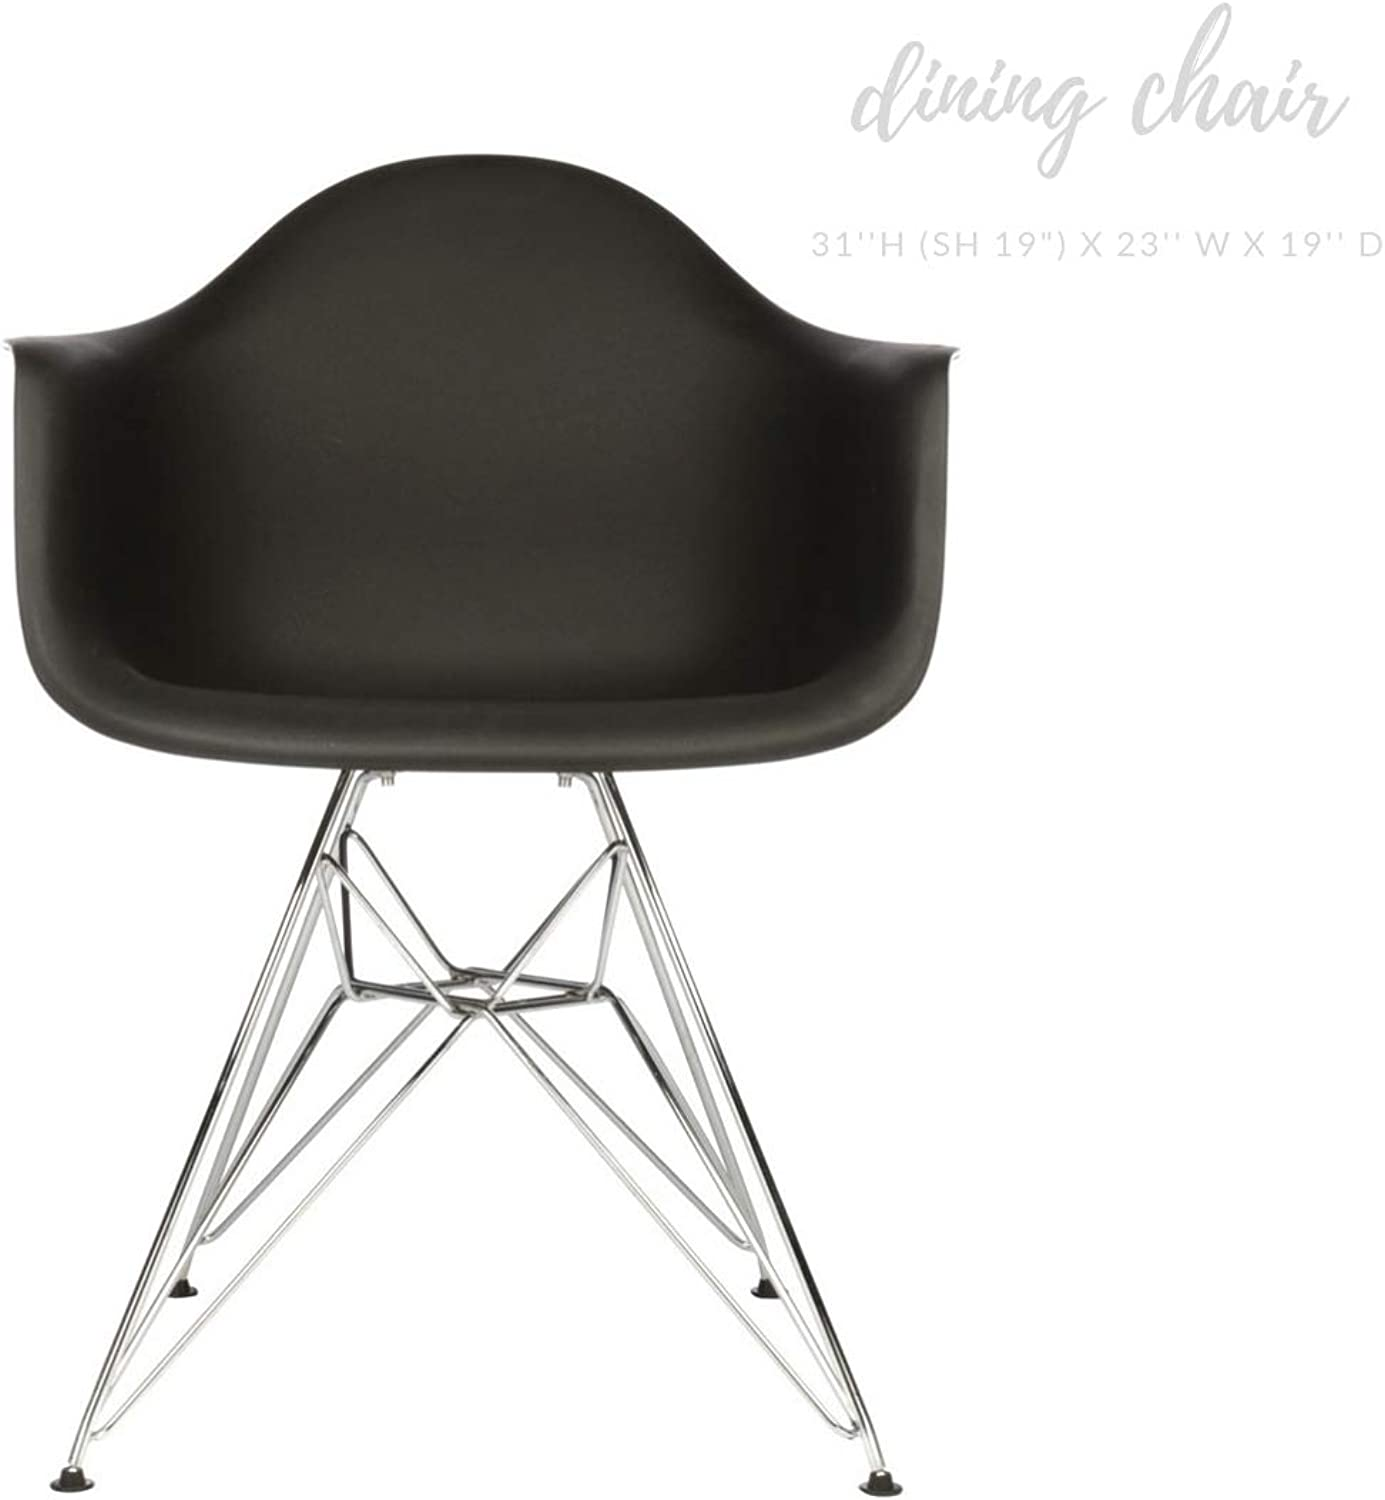 Take Me Home Furniture Eiffel Style Bucket Chair with Chrome Legs, Black, Dining Chair